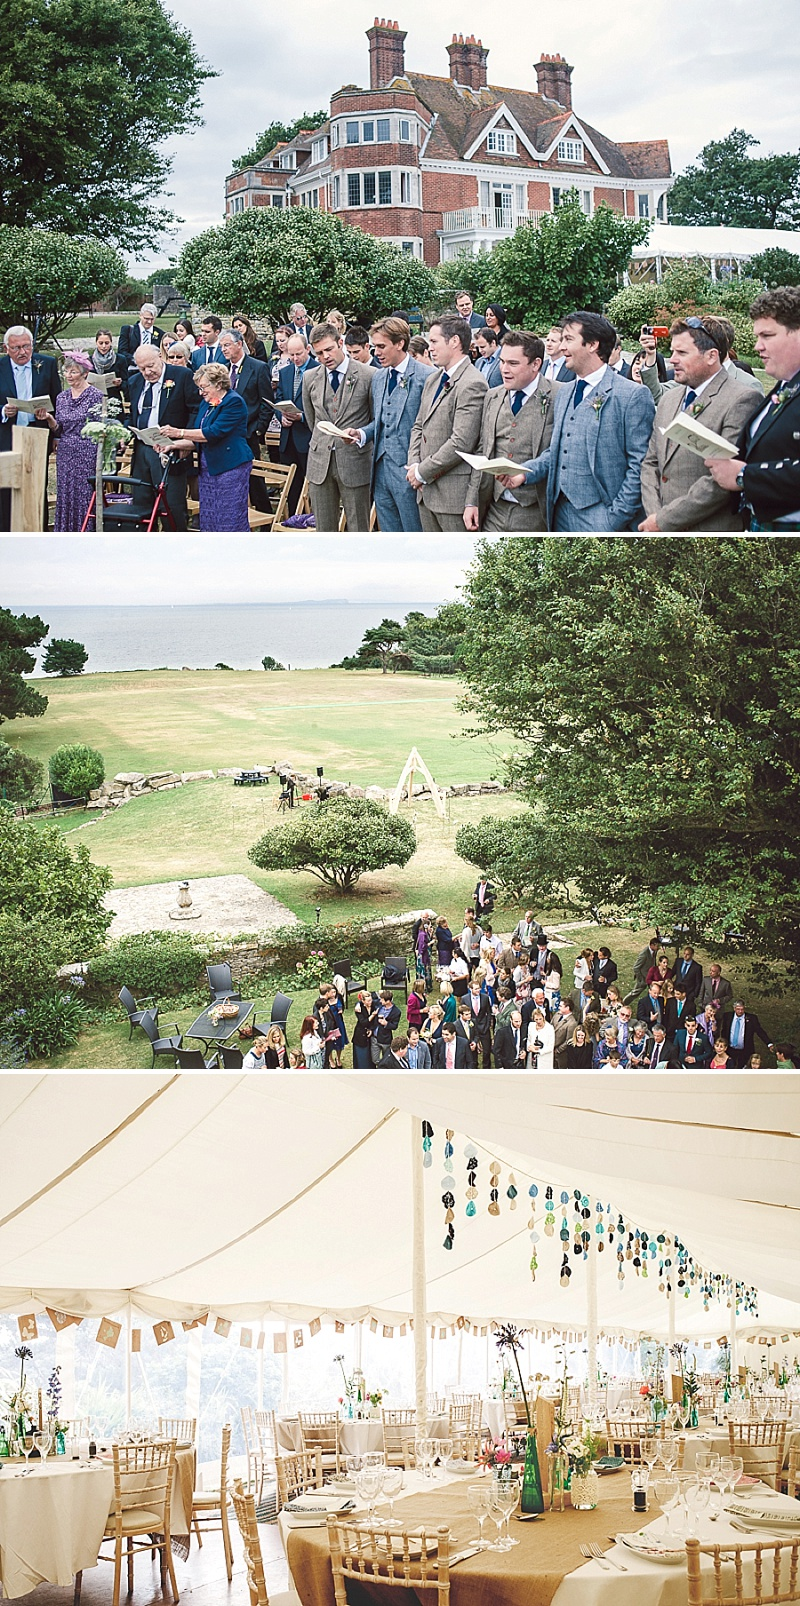 Rustic Wedding At Studland Bay House In Dorset With Bride In Charlie Brear With Hermione Harbutt Accessories And Groom In Victor Valentine Suit With Bridesmaids In French Connection 7